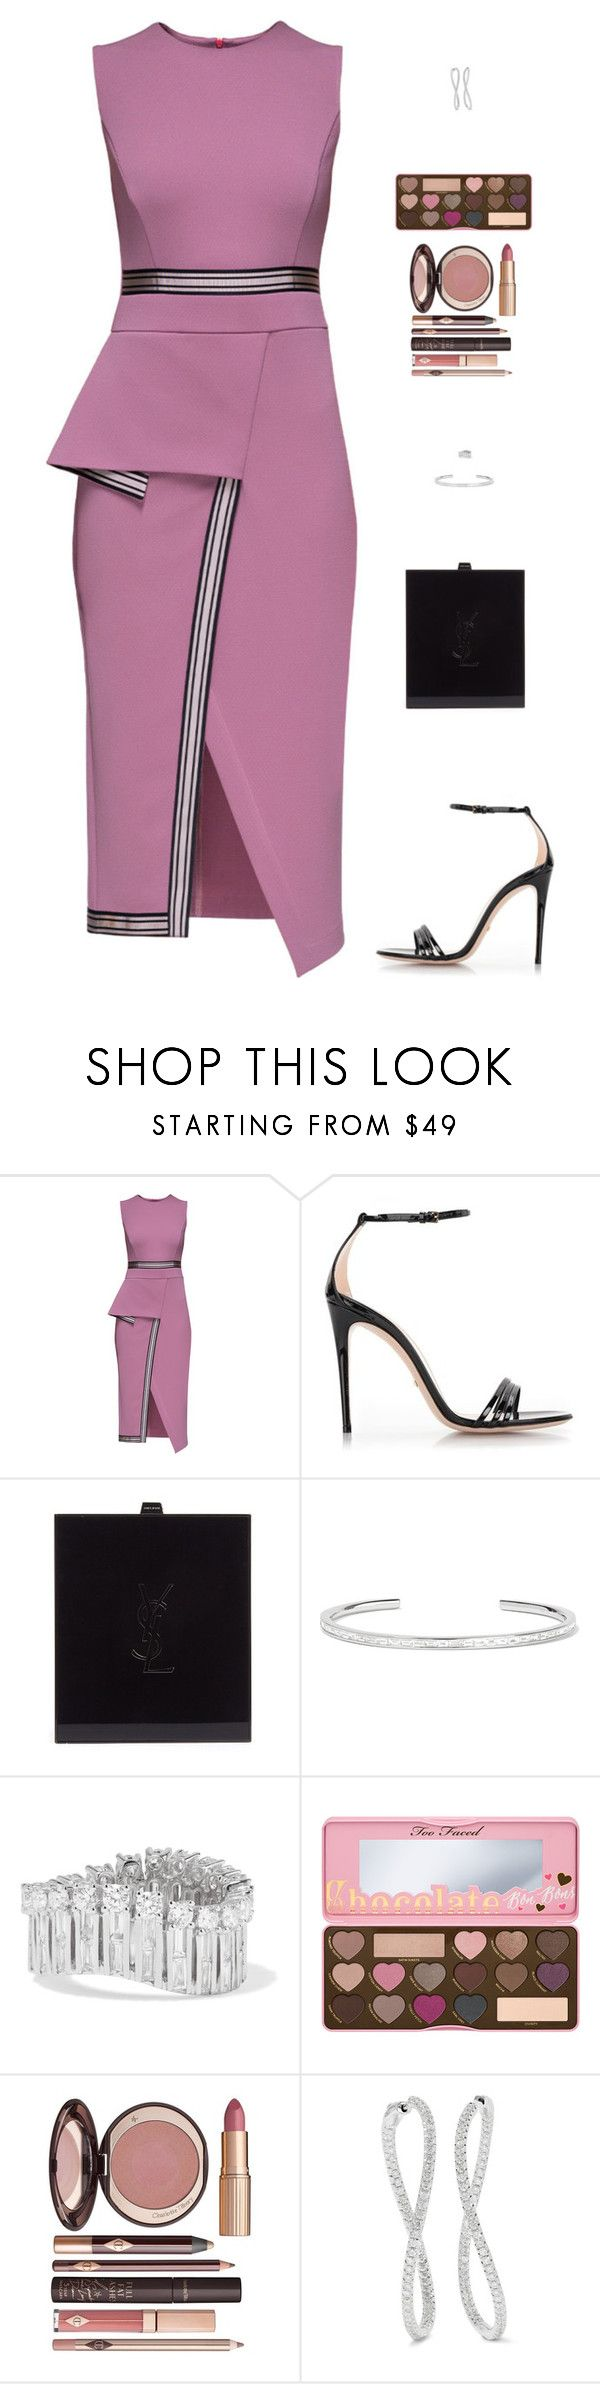 """Untitled #5055"" by mdmsb on Polyvore featuring Lattori, Gucci, Yves Saint Laurent, Anita Ko, Too Faced Cosmetics and Charlotte Tilbury"